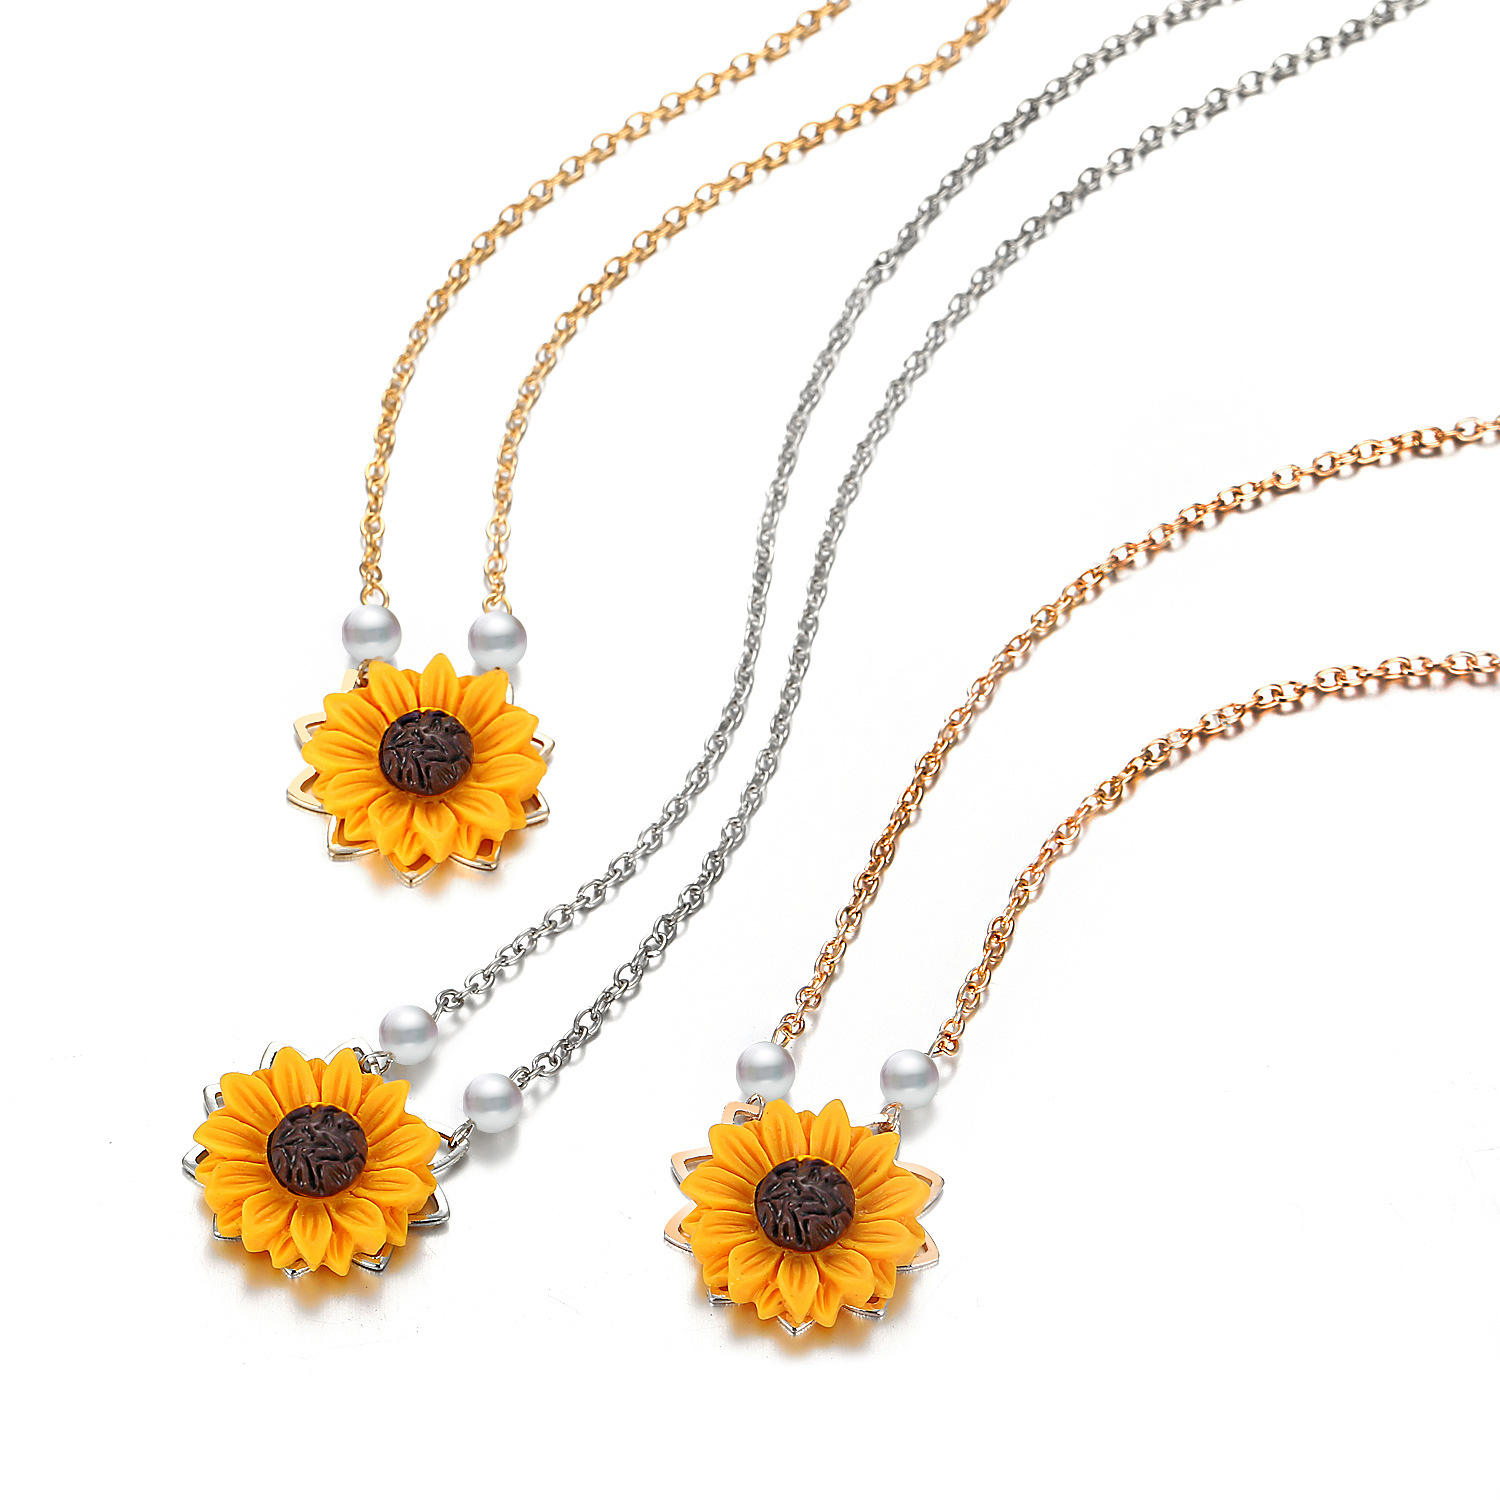 Customized Artificial Pearls Women Long Chain Sunflower Pendant Necklace